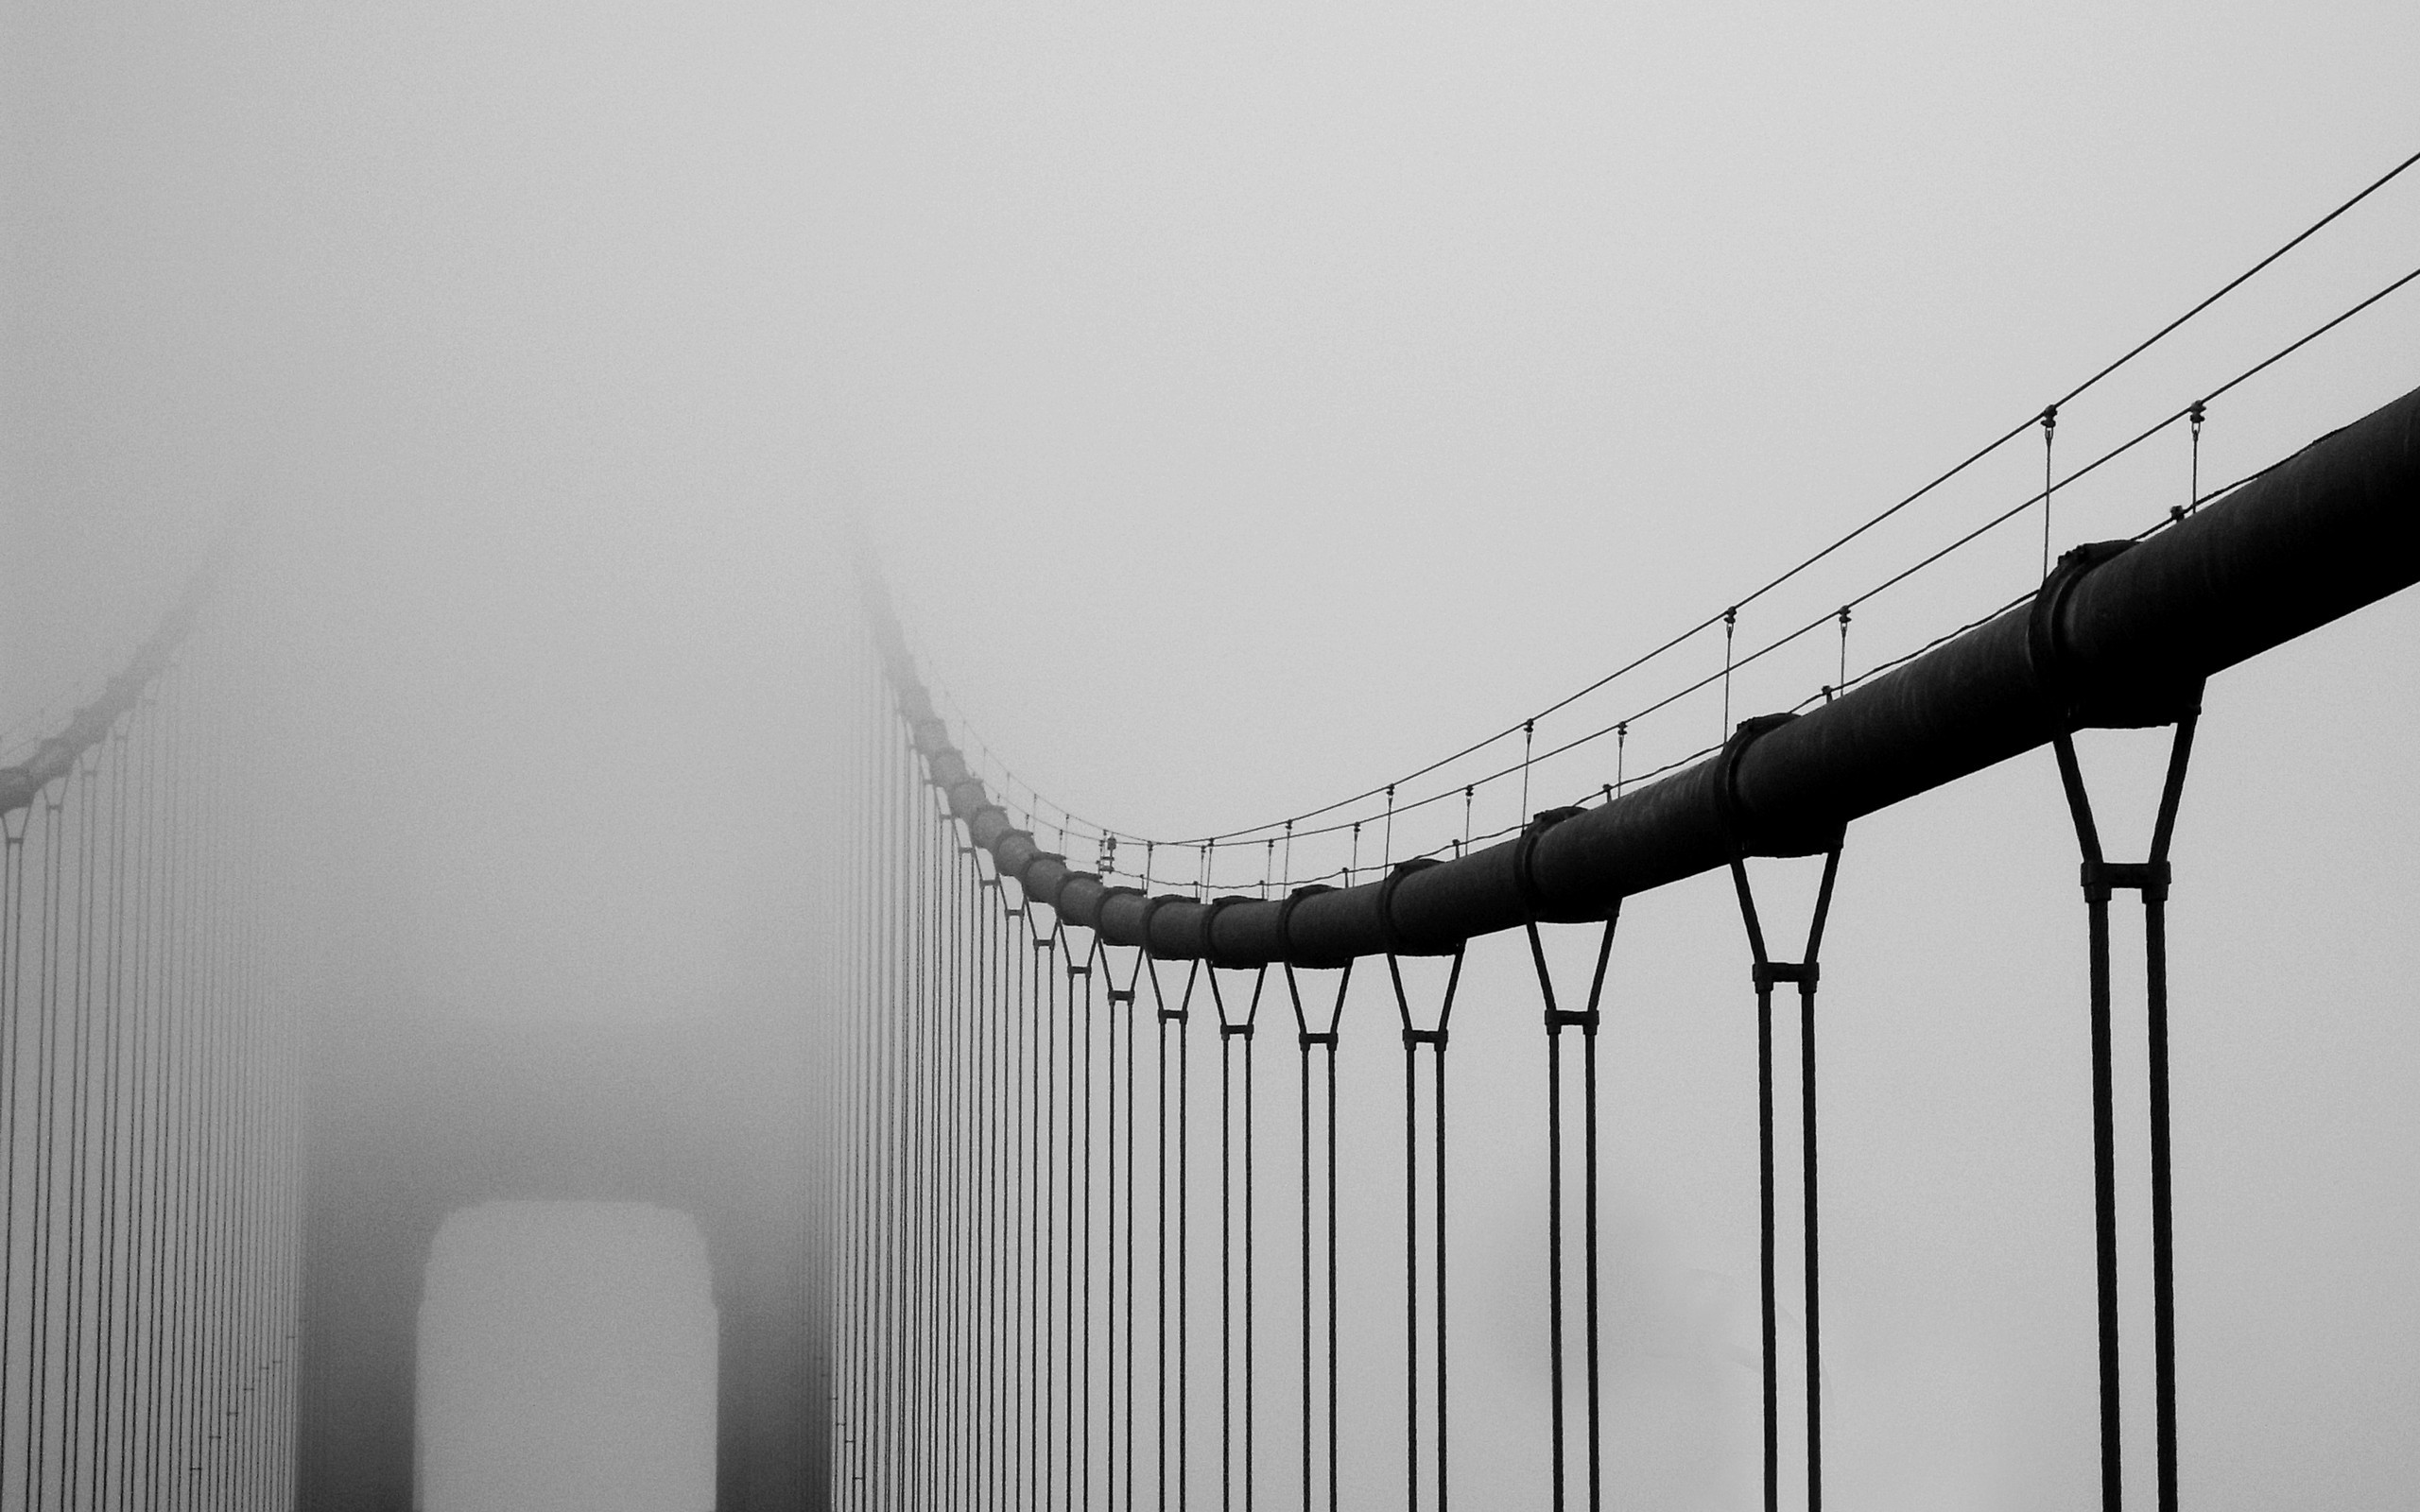 fog Bridges HD Wallpaper